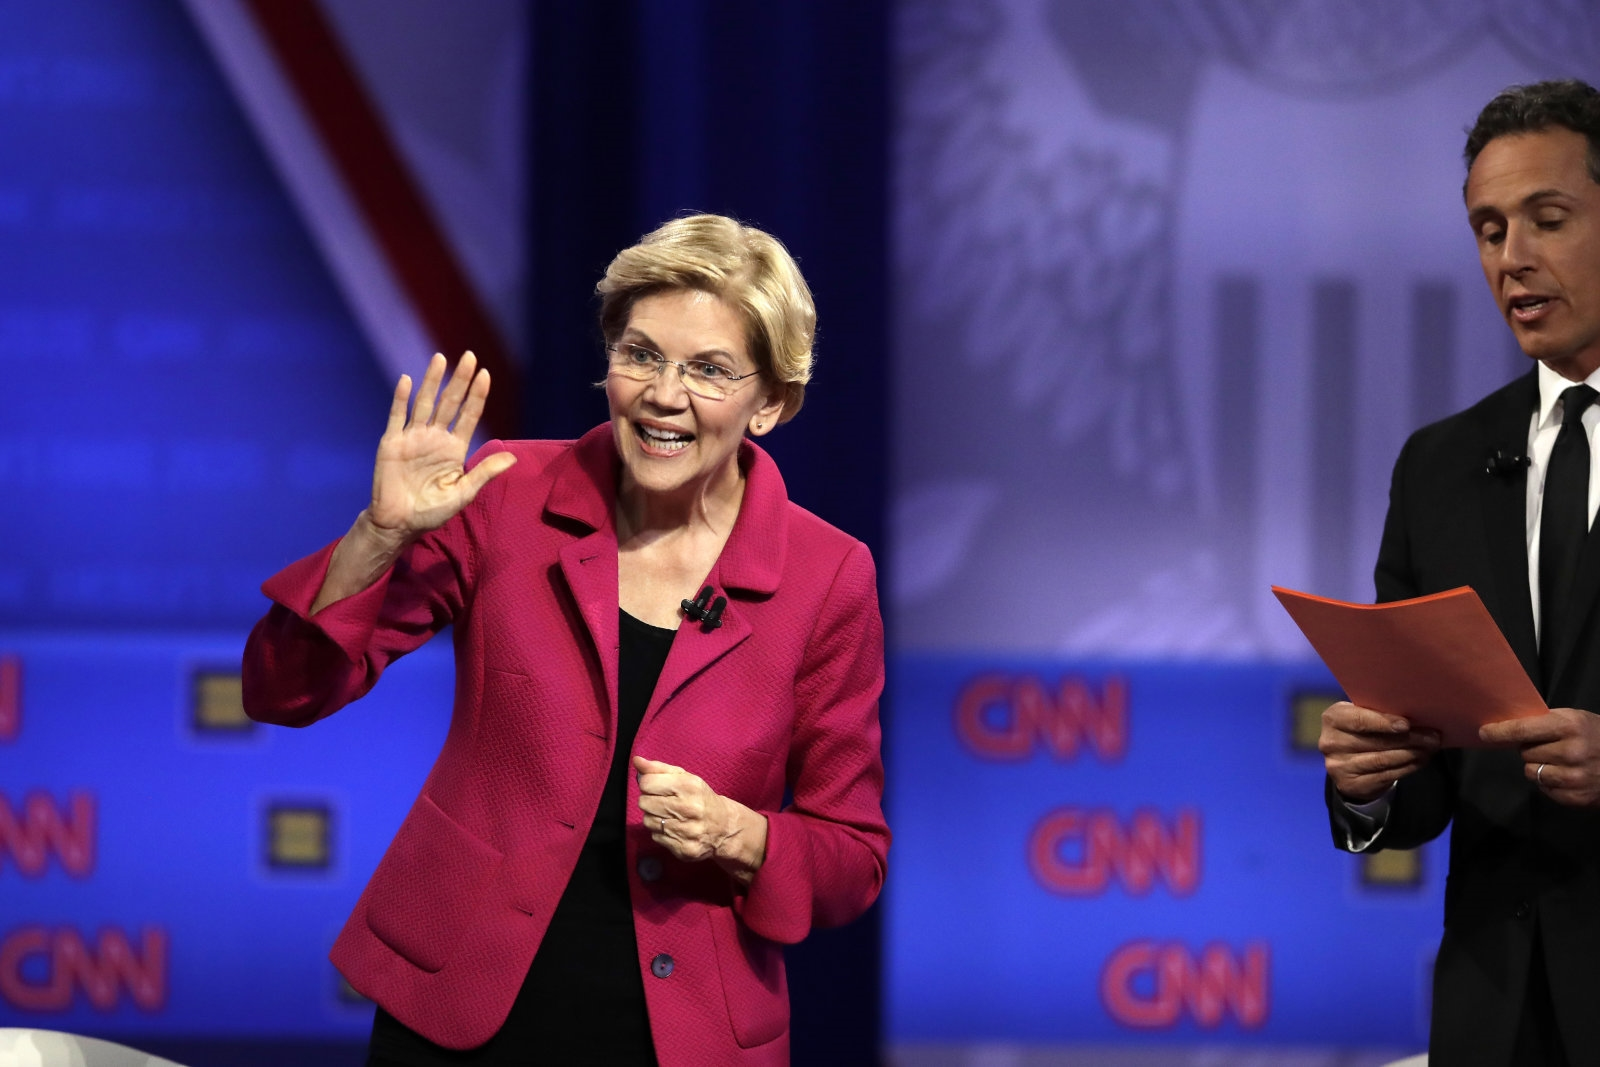 Elizabeth Warren Facebook ad mocks Facebook's fact checking policies | DeviceDaily.com